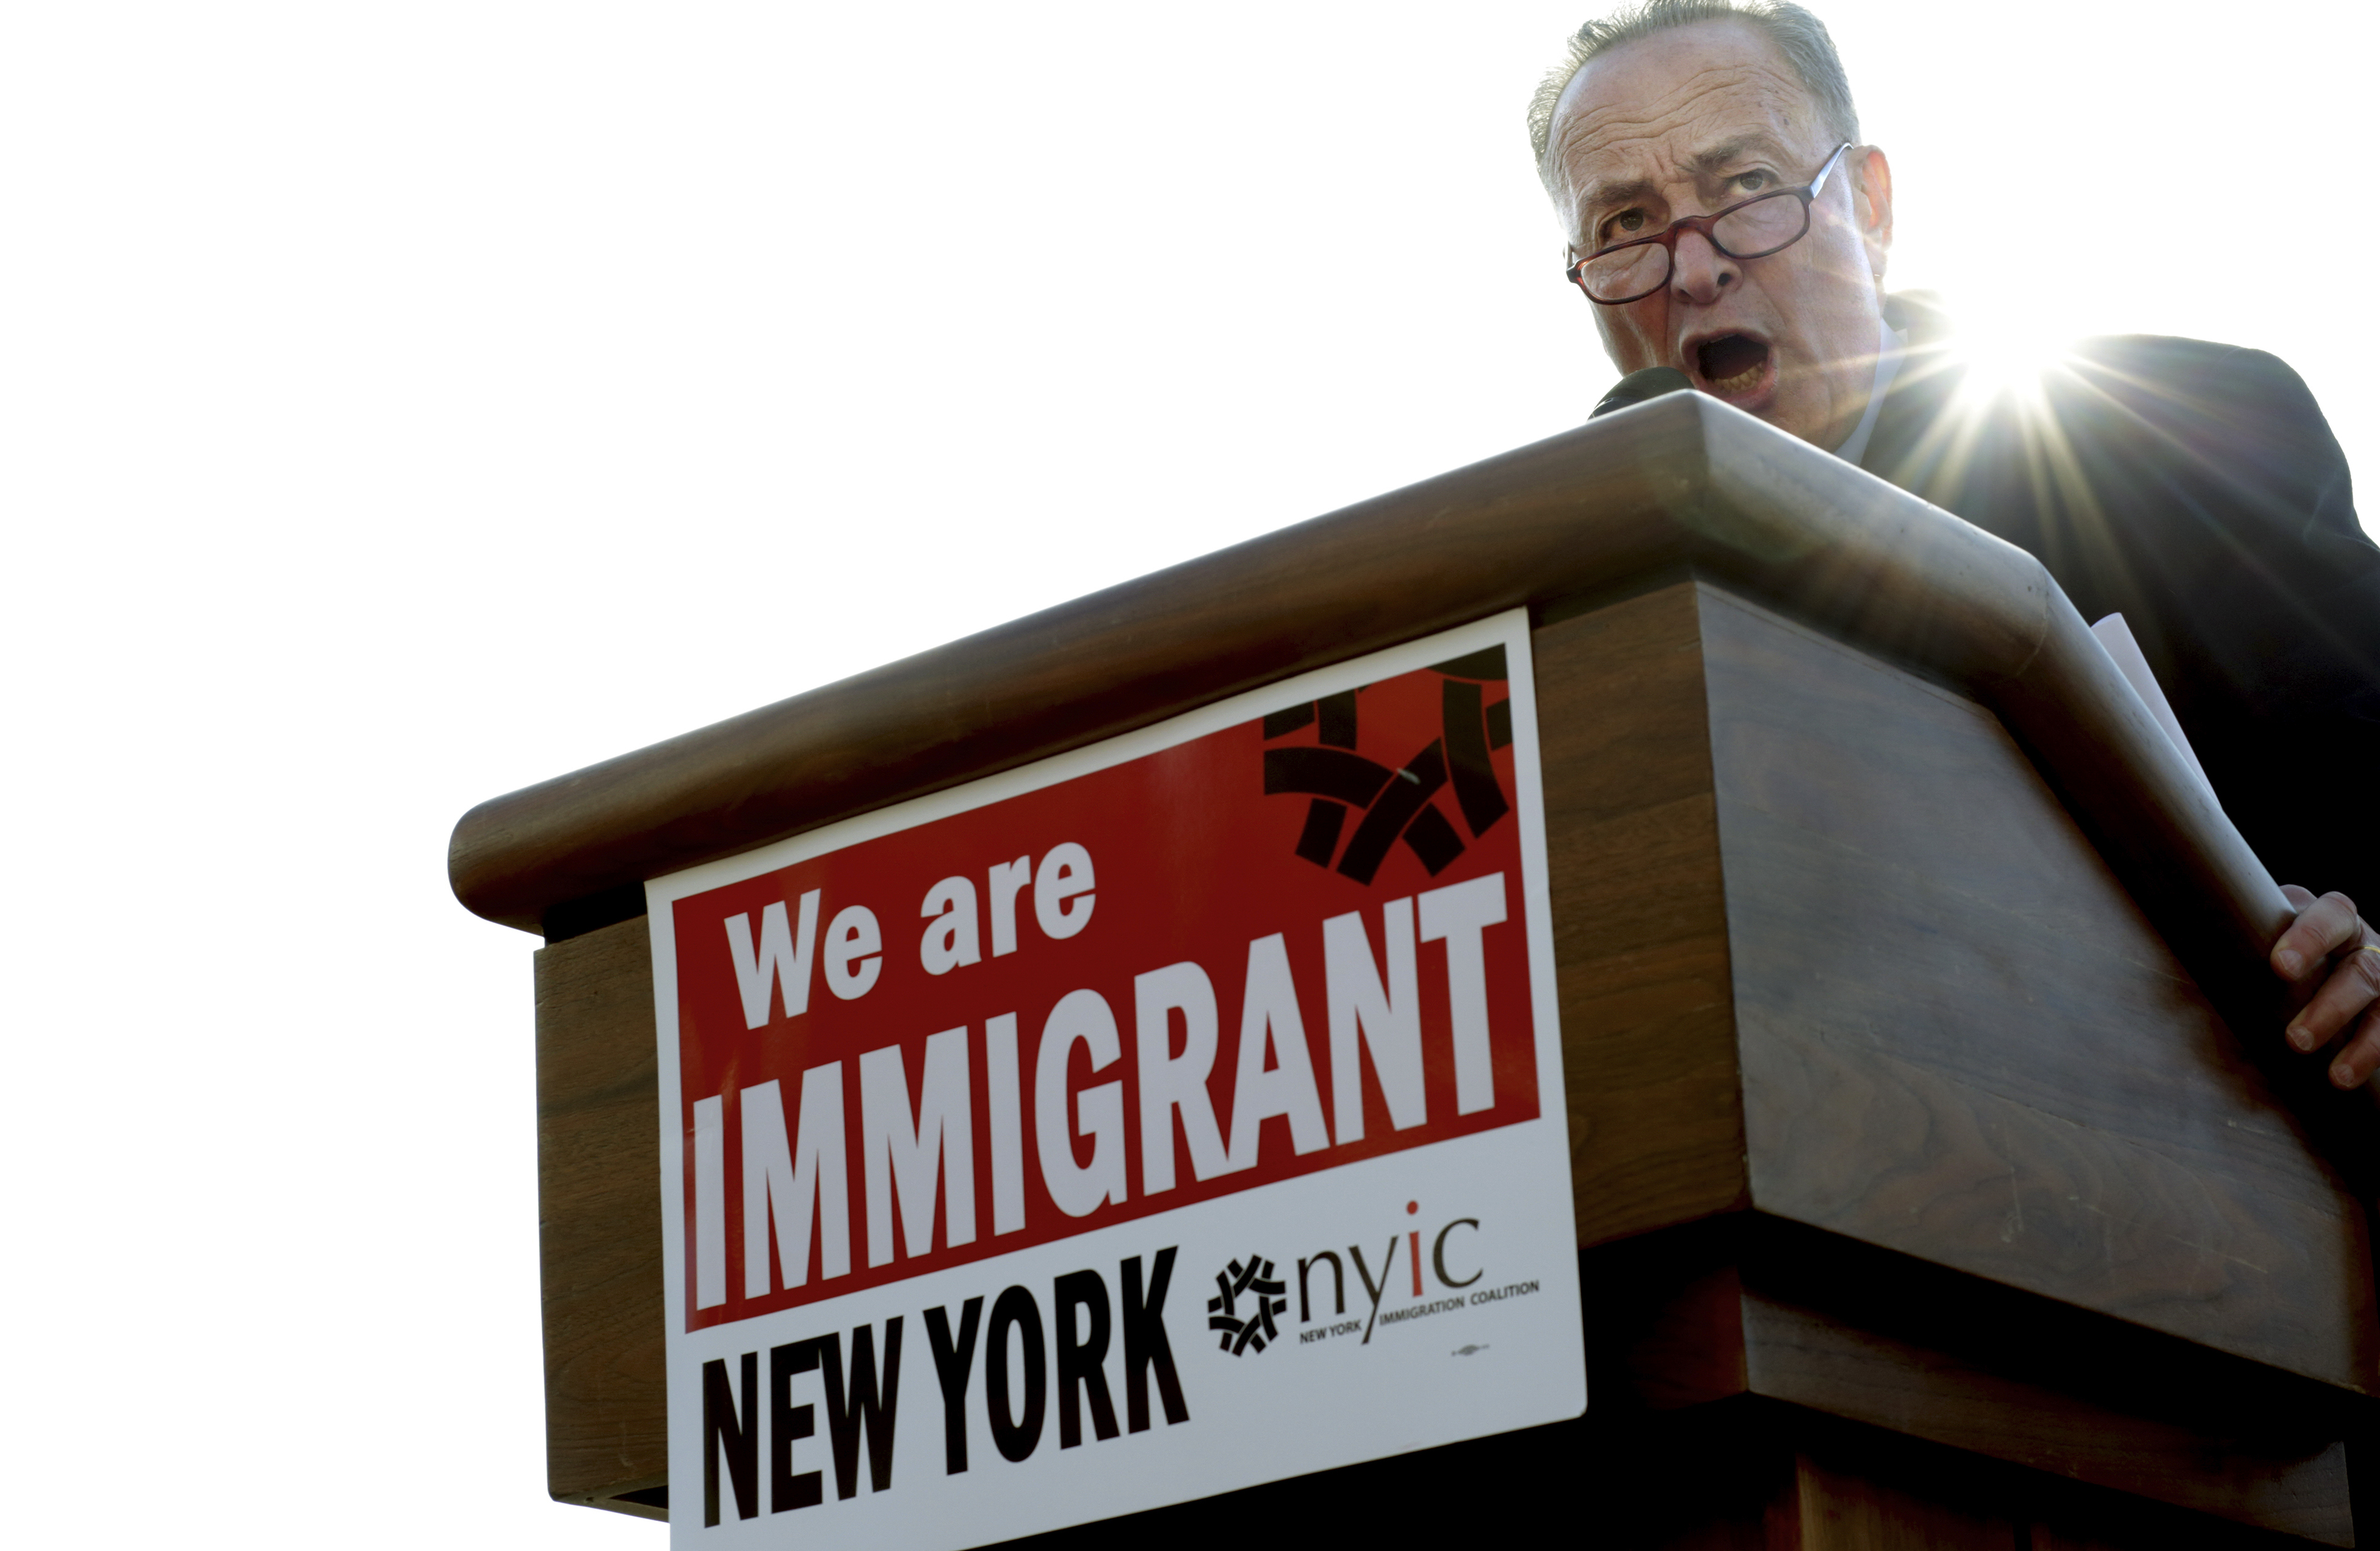 Senate Minority Leader Chuck Schumer speaks at a rally protesting President Donald Trump's immigration ban on nationals from seven predominantly Muslim countries, at Battery Park in New York, Jan. 29, 2017. (Yana Paskova/The New York Times)